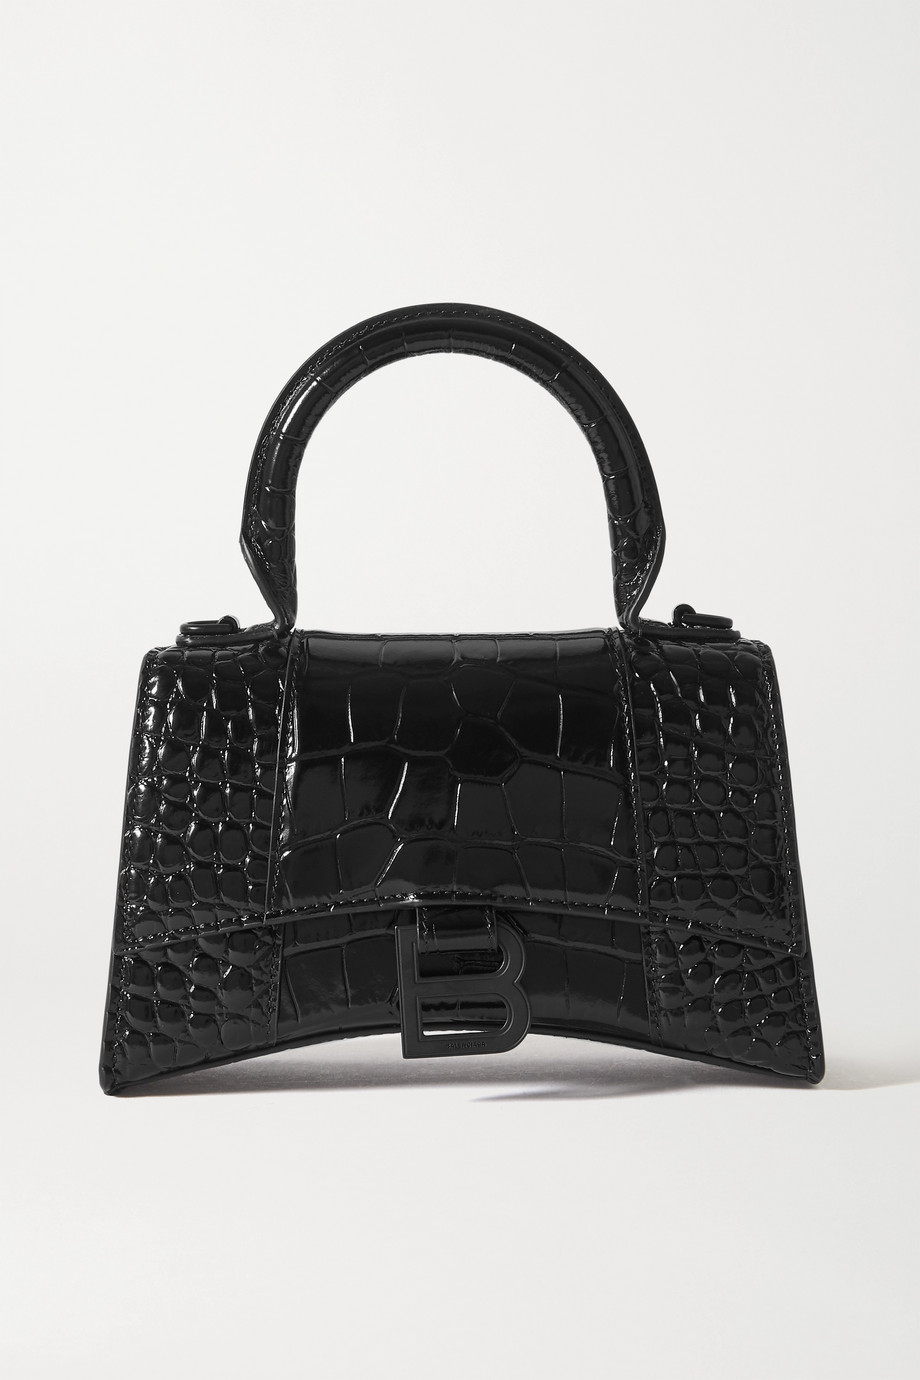 BALENCIAGA Hourglass mini croc-effect leather tote